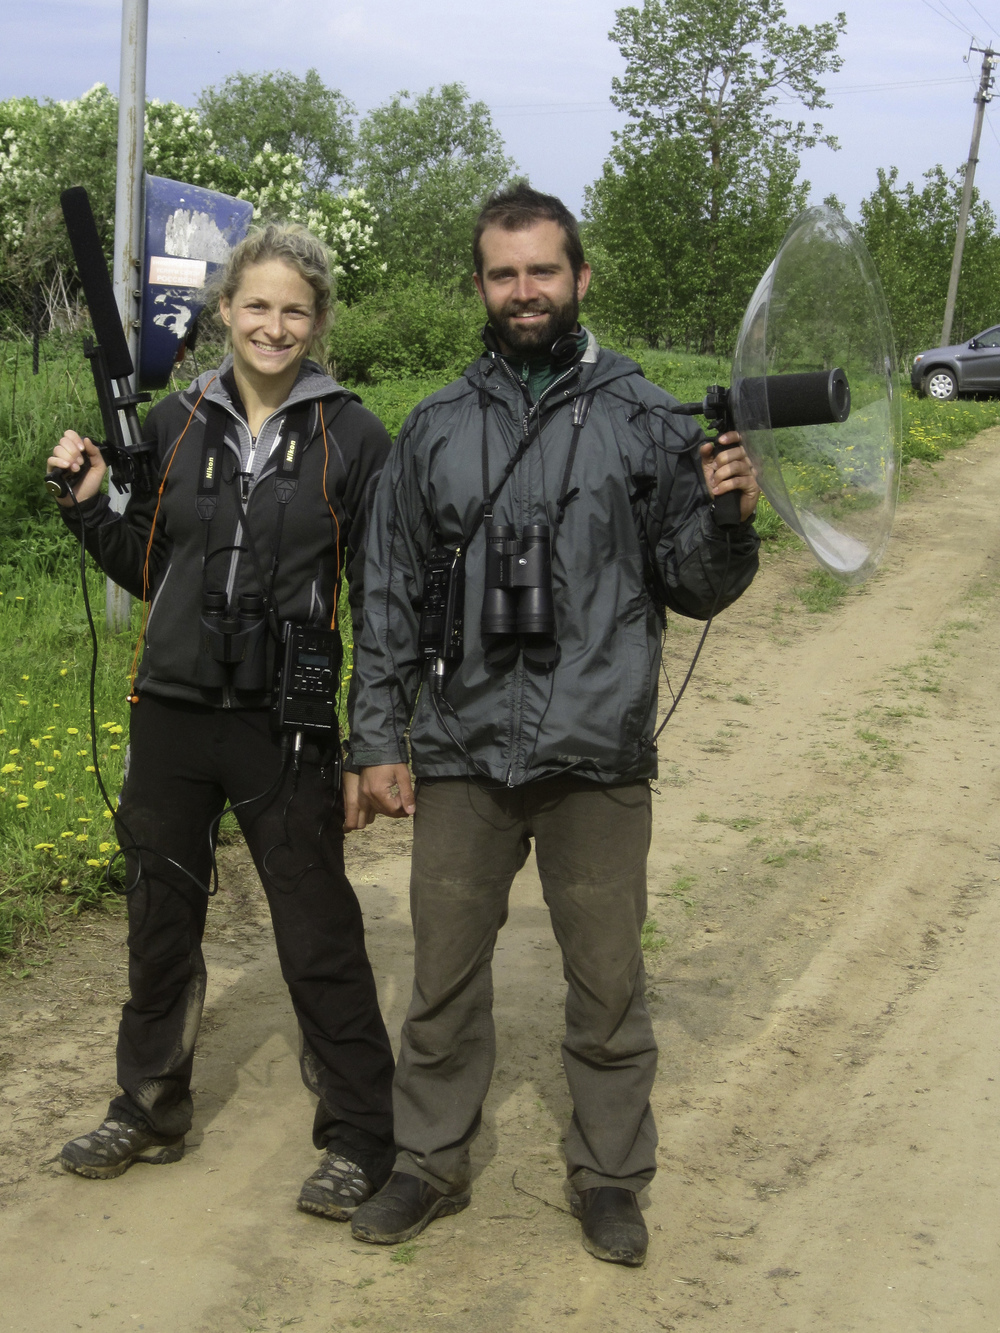 Liz and I, geared up for some song recording in a village 2 hours north of Moscow